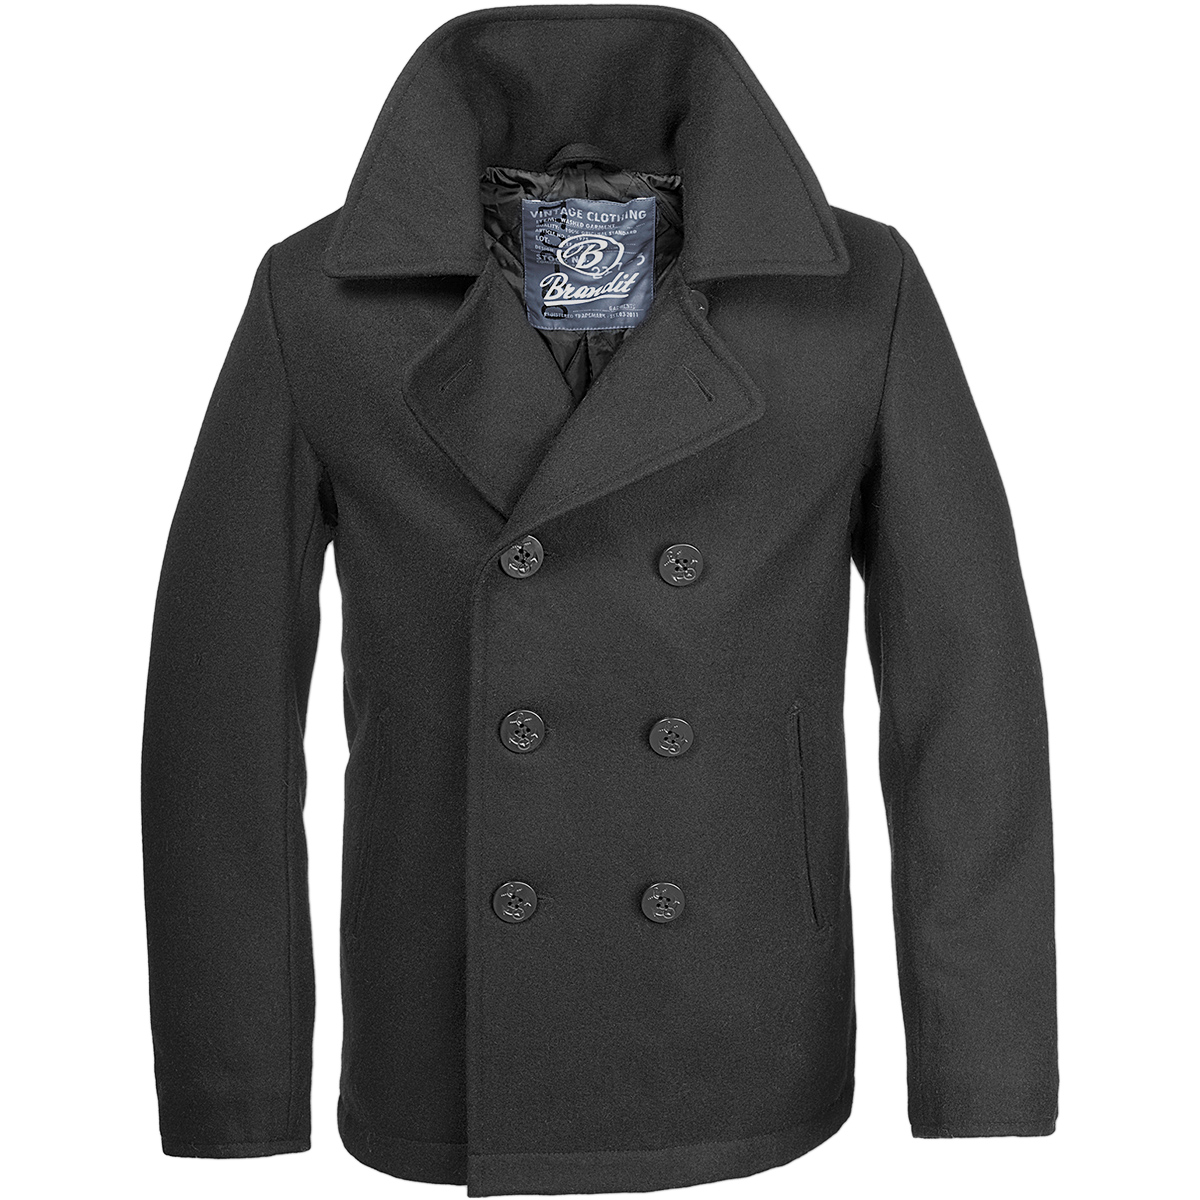 Enjoy free shipping and easy returns every day at Kohl's. Find great deals on Womens Black Peacoat Coats & Jackets at Kohl's today!